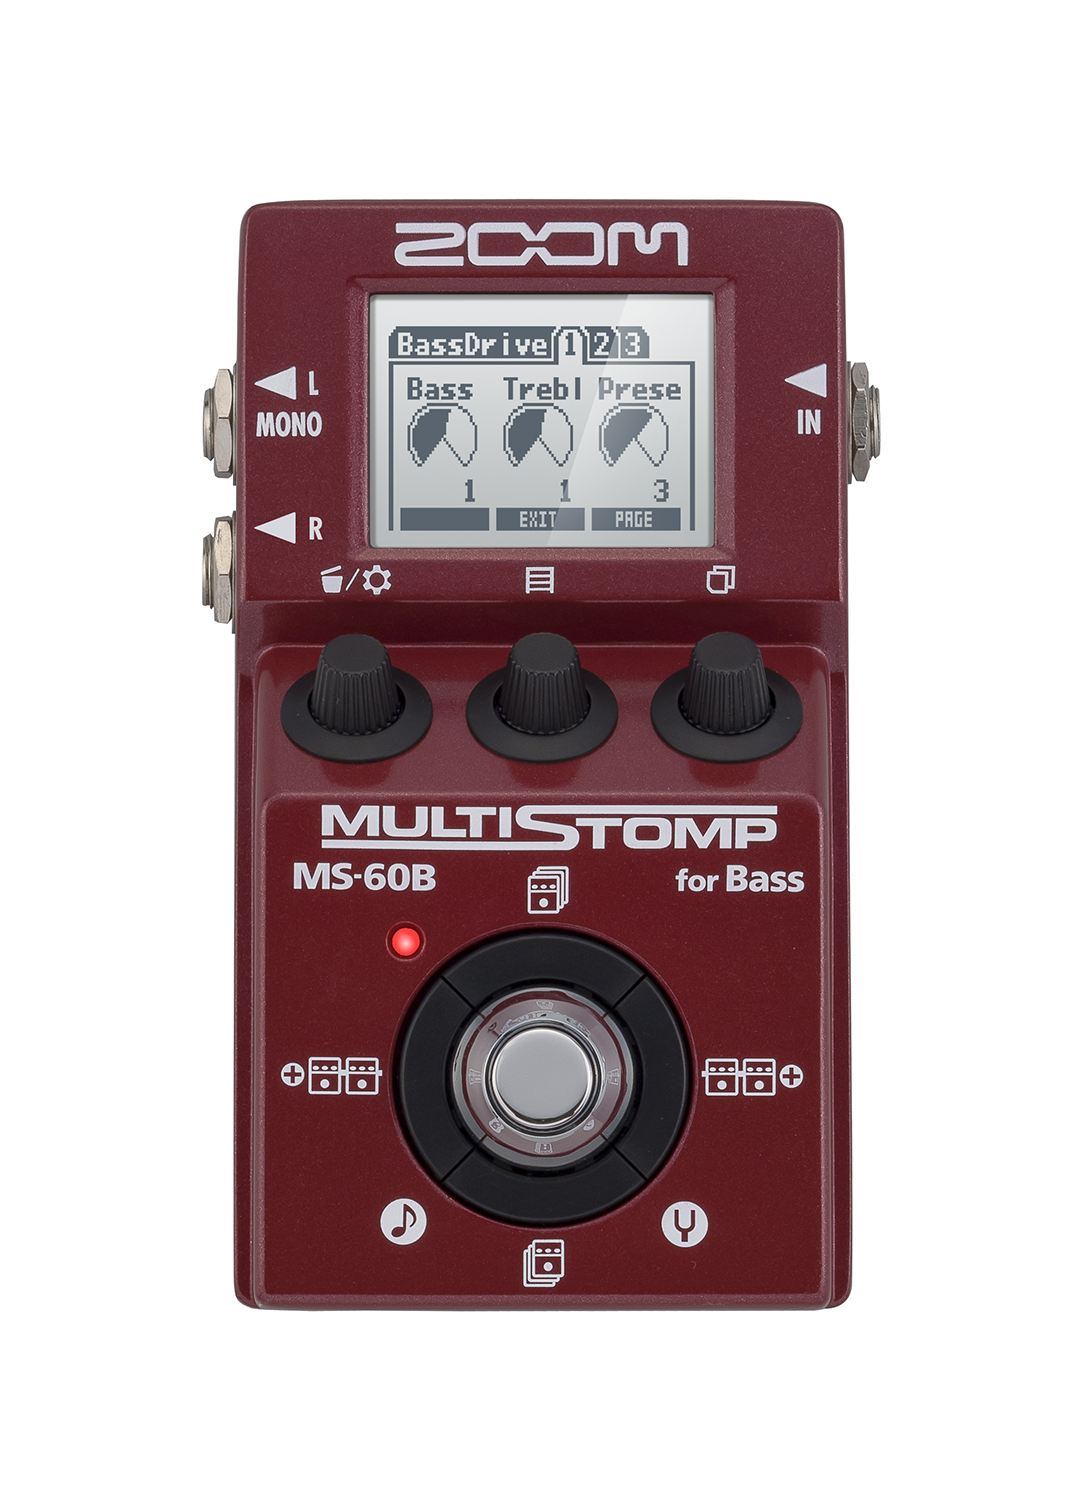 Home Central Music Squishy Circuits Deluxe Kit Click To Enlarge Plug Into Zooms Ms 60b Multistomp And Bring Your Bass The Forefront 58 Expertly Crafted Dsp Effects Amp Cabinet Models Give You Everything